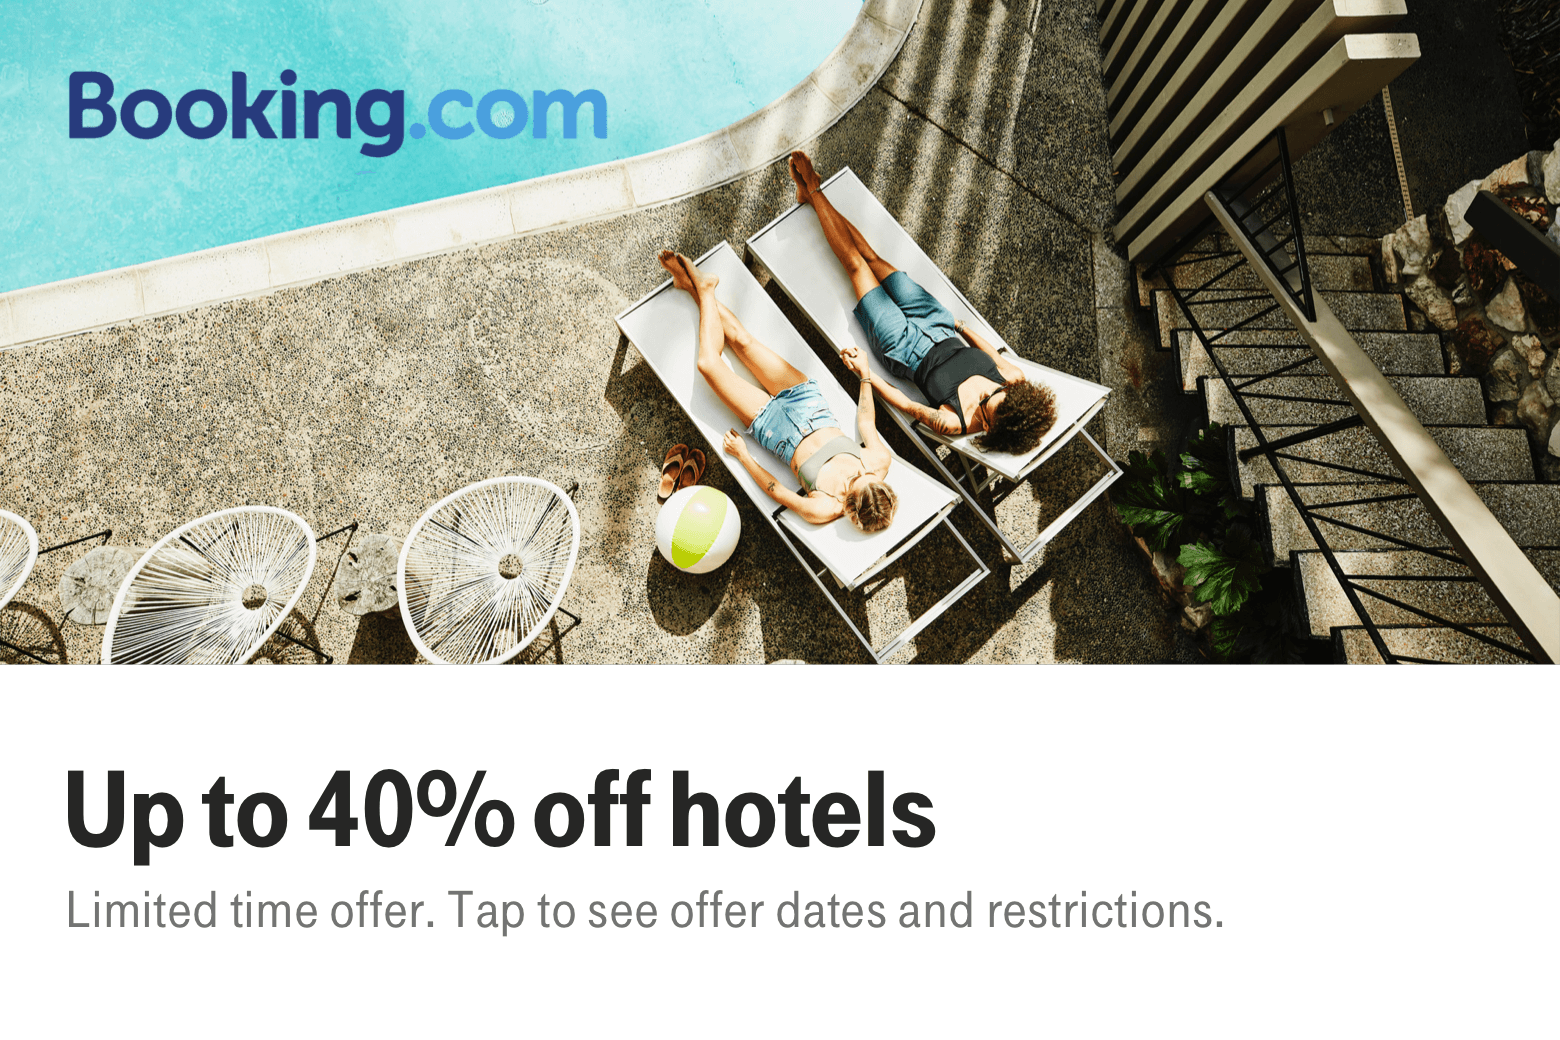 Booking.com. Up to 40% off hotels. Limited time offer. Tap to see offer dates and restrictions.